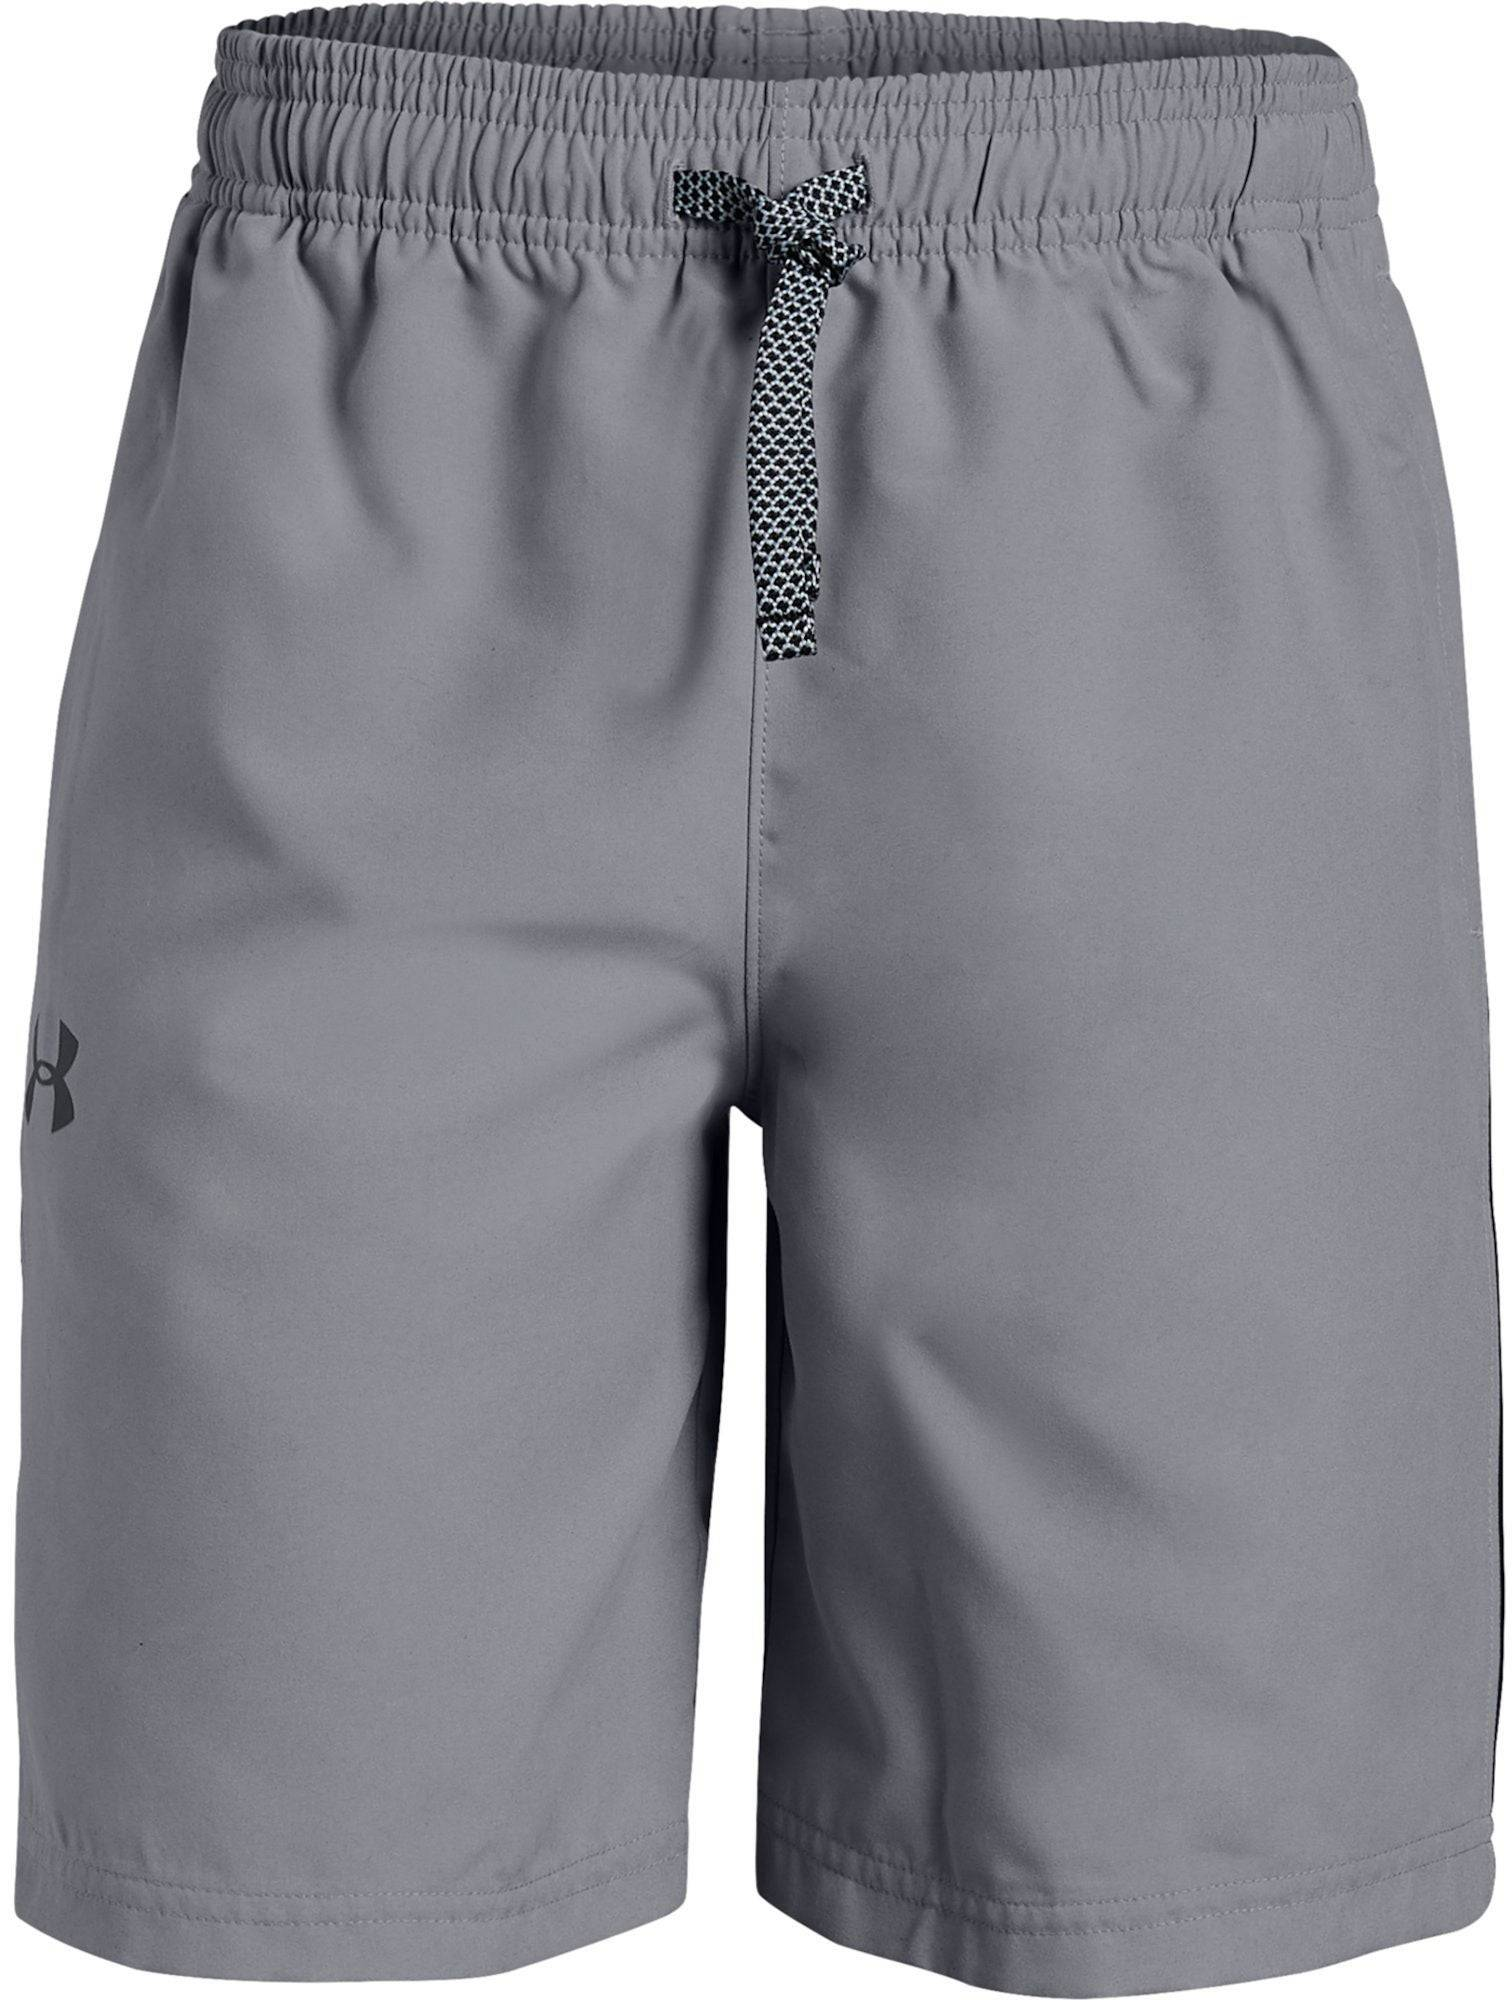 Under Armour UA Woven Graphic Shorts, Steel M